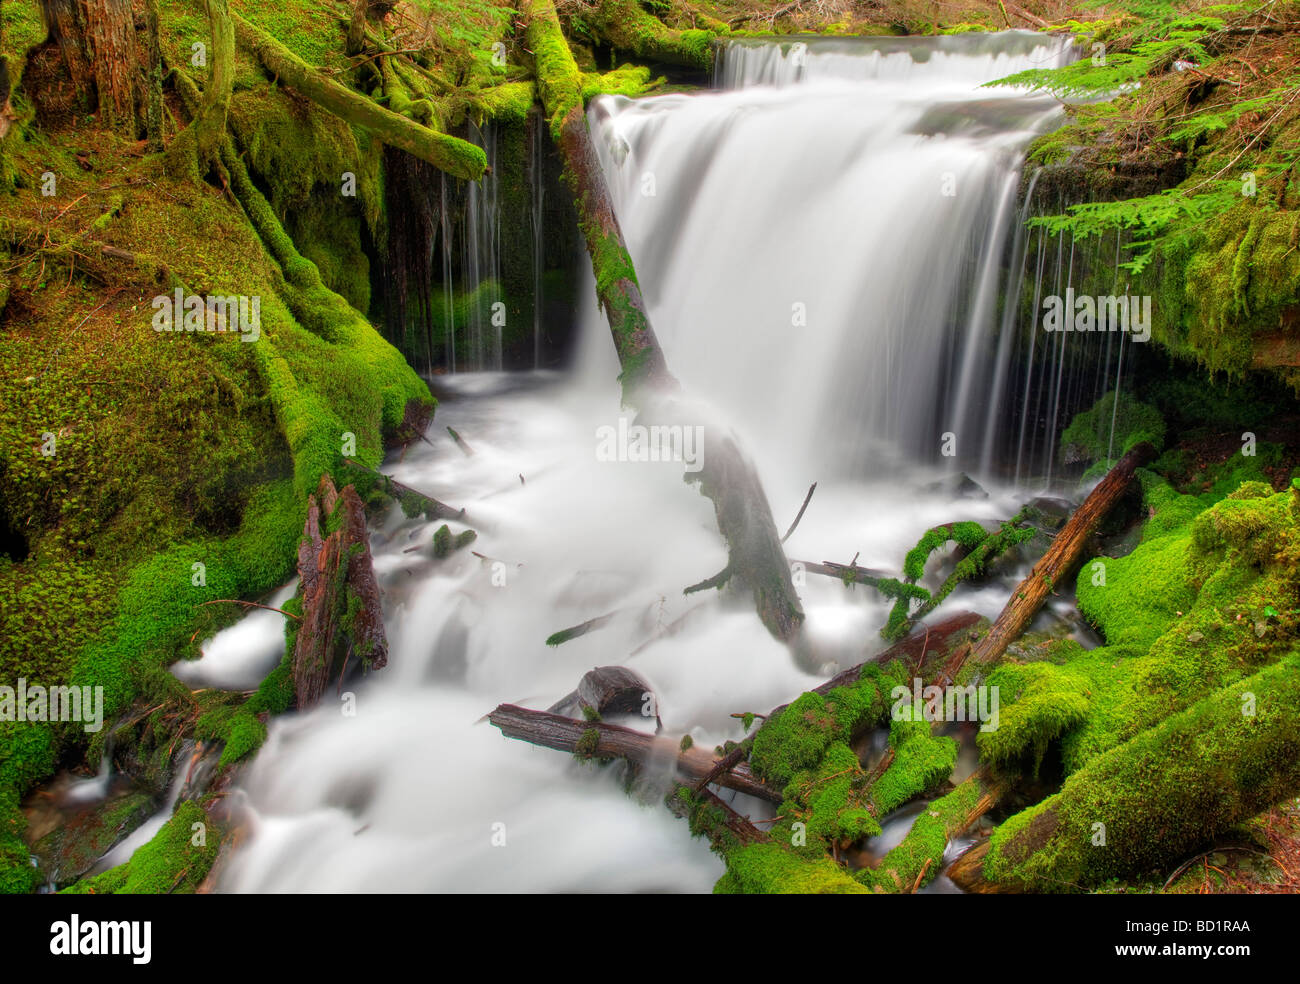 Big Spring Creek with mossy rocks and waterfalls Gifford Pinchot National forest Washington - Stock Image